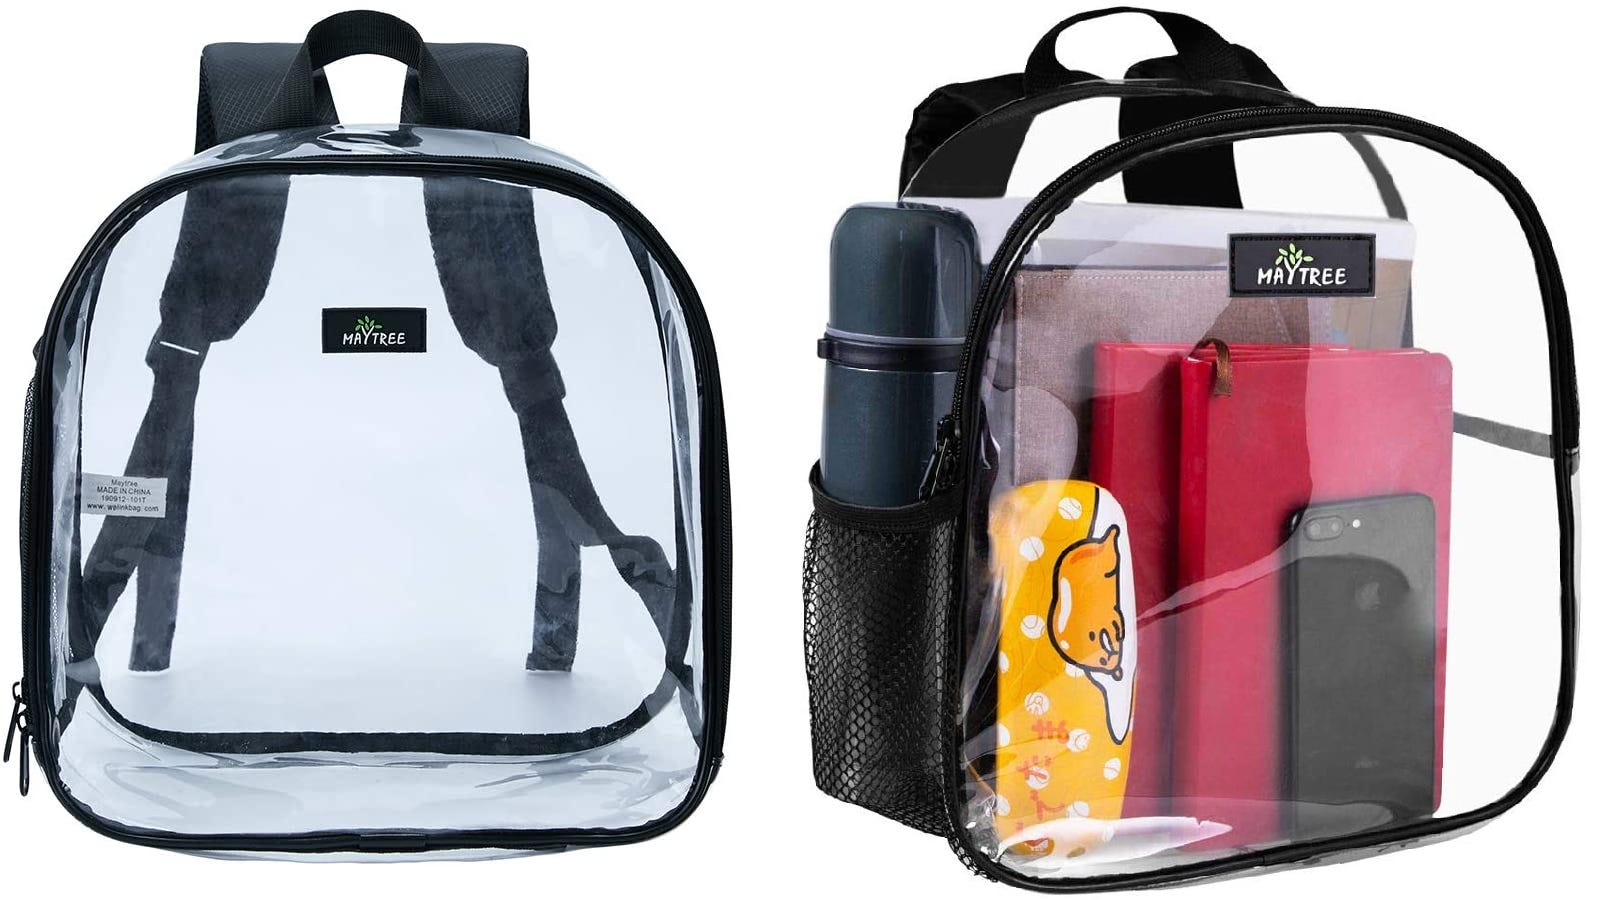 a clear mini backpack with one large compartment and a mesh side pocket shown empty and filled with notebooks